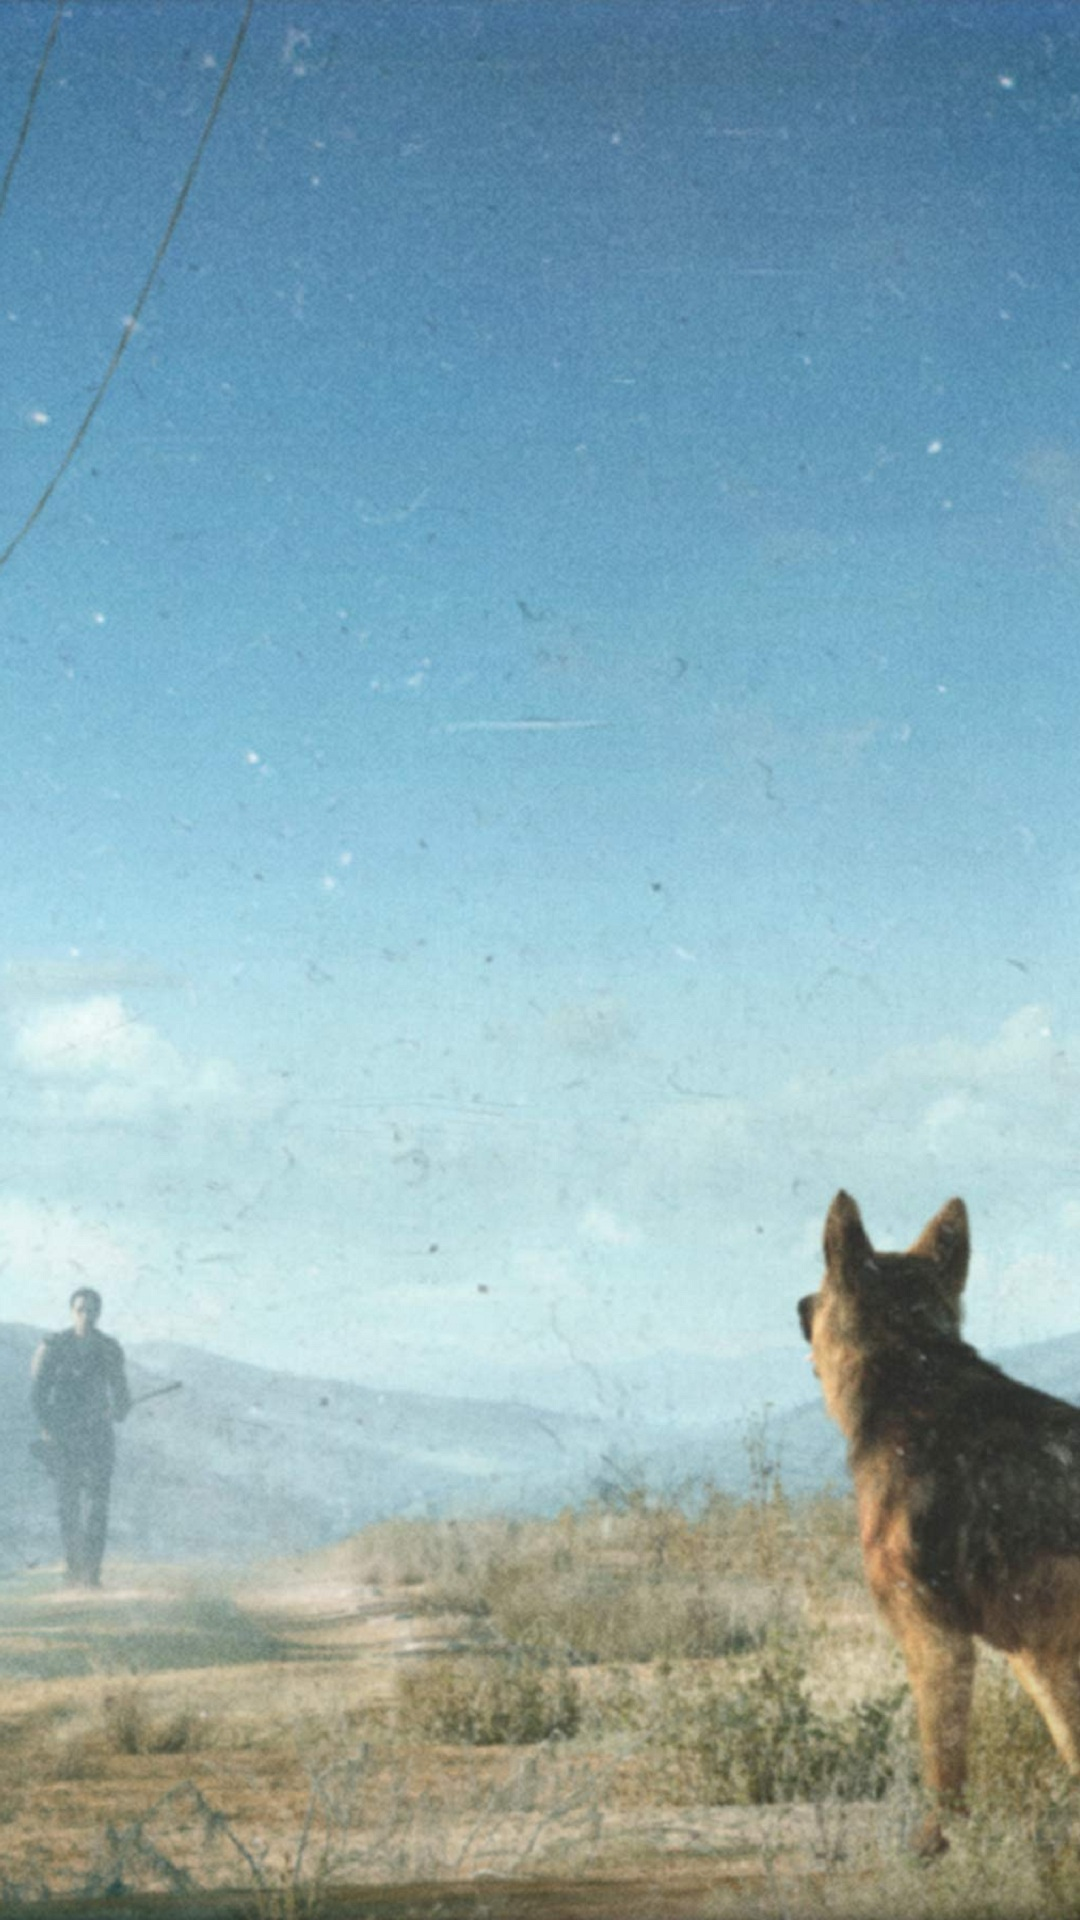 Cute New Wallpapers For Mobile 18 Fallout 4 Wallpapers For Mobile Fallout 4 Fo4 Mods